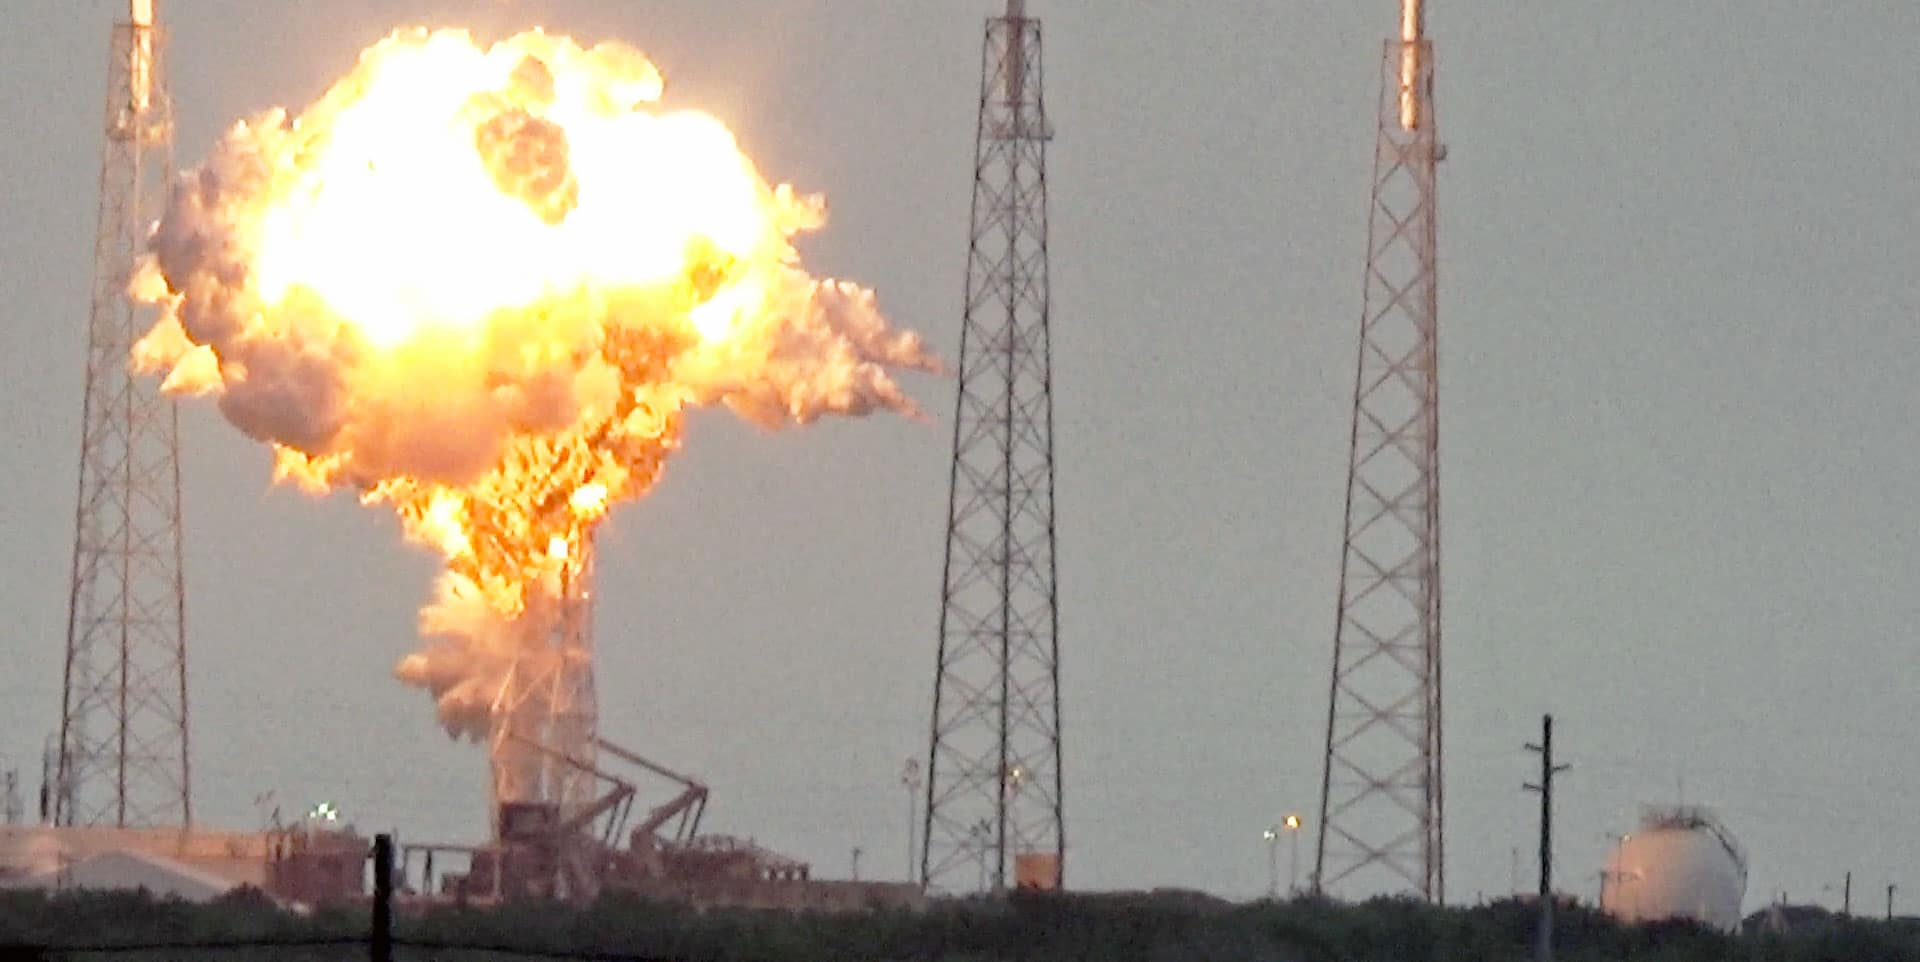 The Falcon 9 rocket exploding on the launchpad.